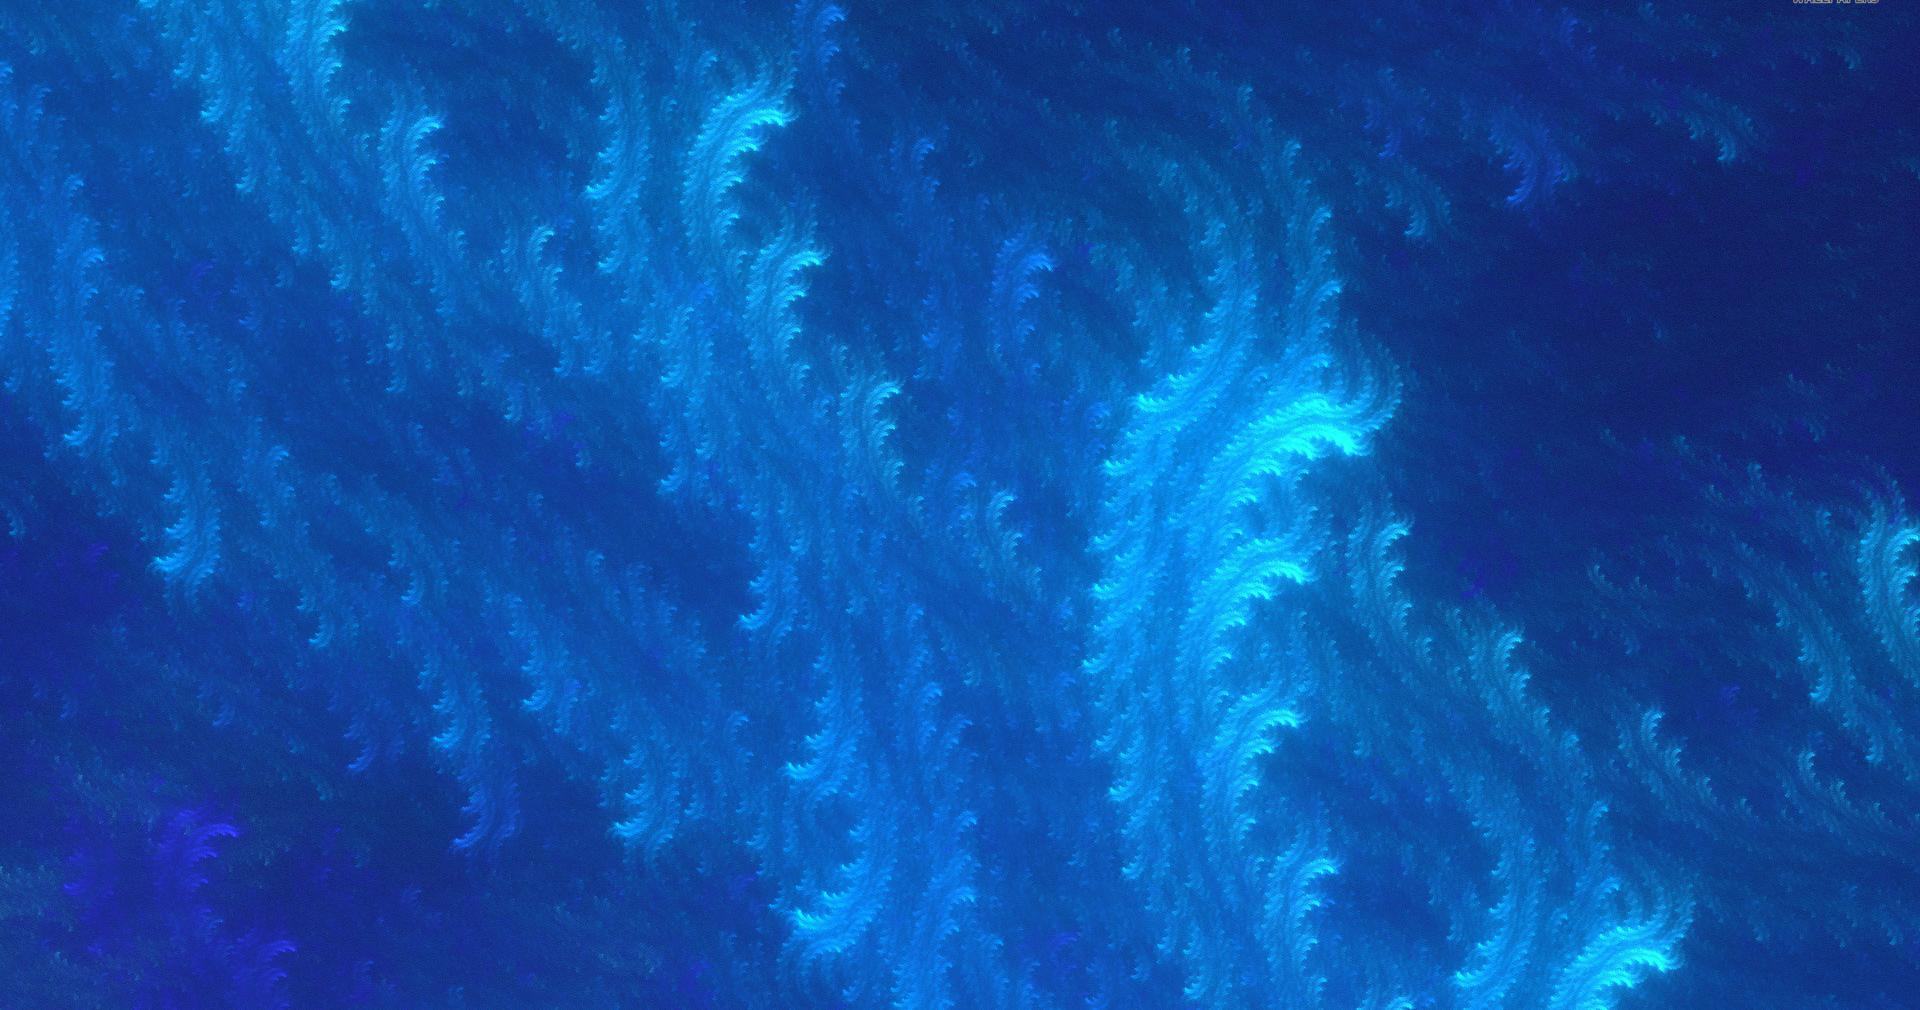 Blue fractal waves wallpapers HD quality